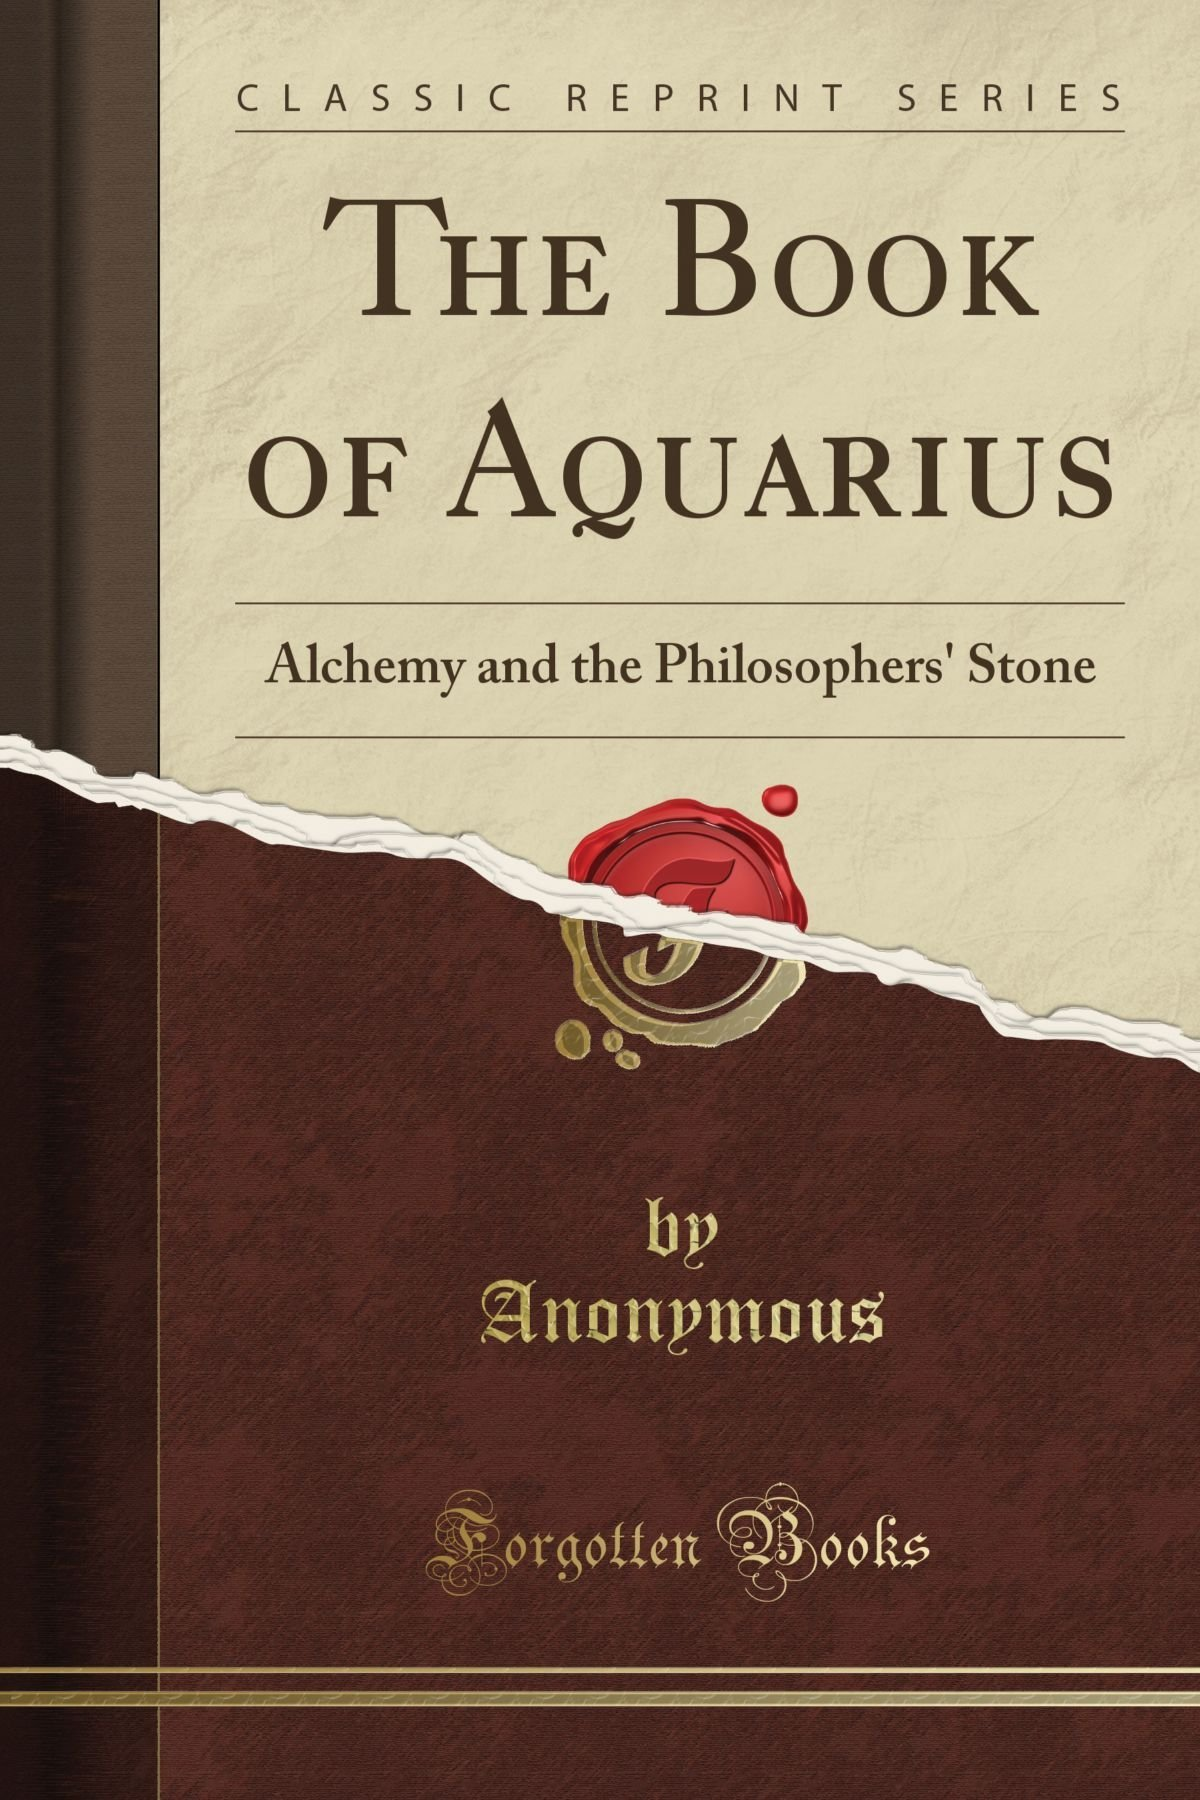 Amazon.com: The Book of Aquarius: Alchemy and the Philosophers' Stone  (Classic Reprint) (9781451020168): Unknown Author: Books